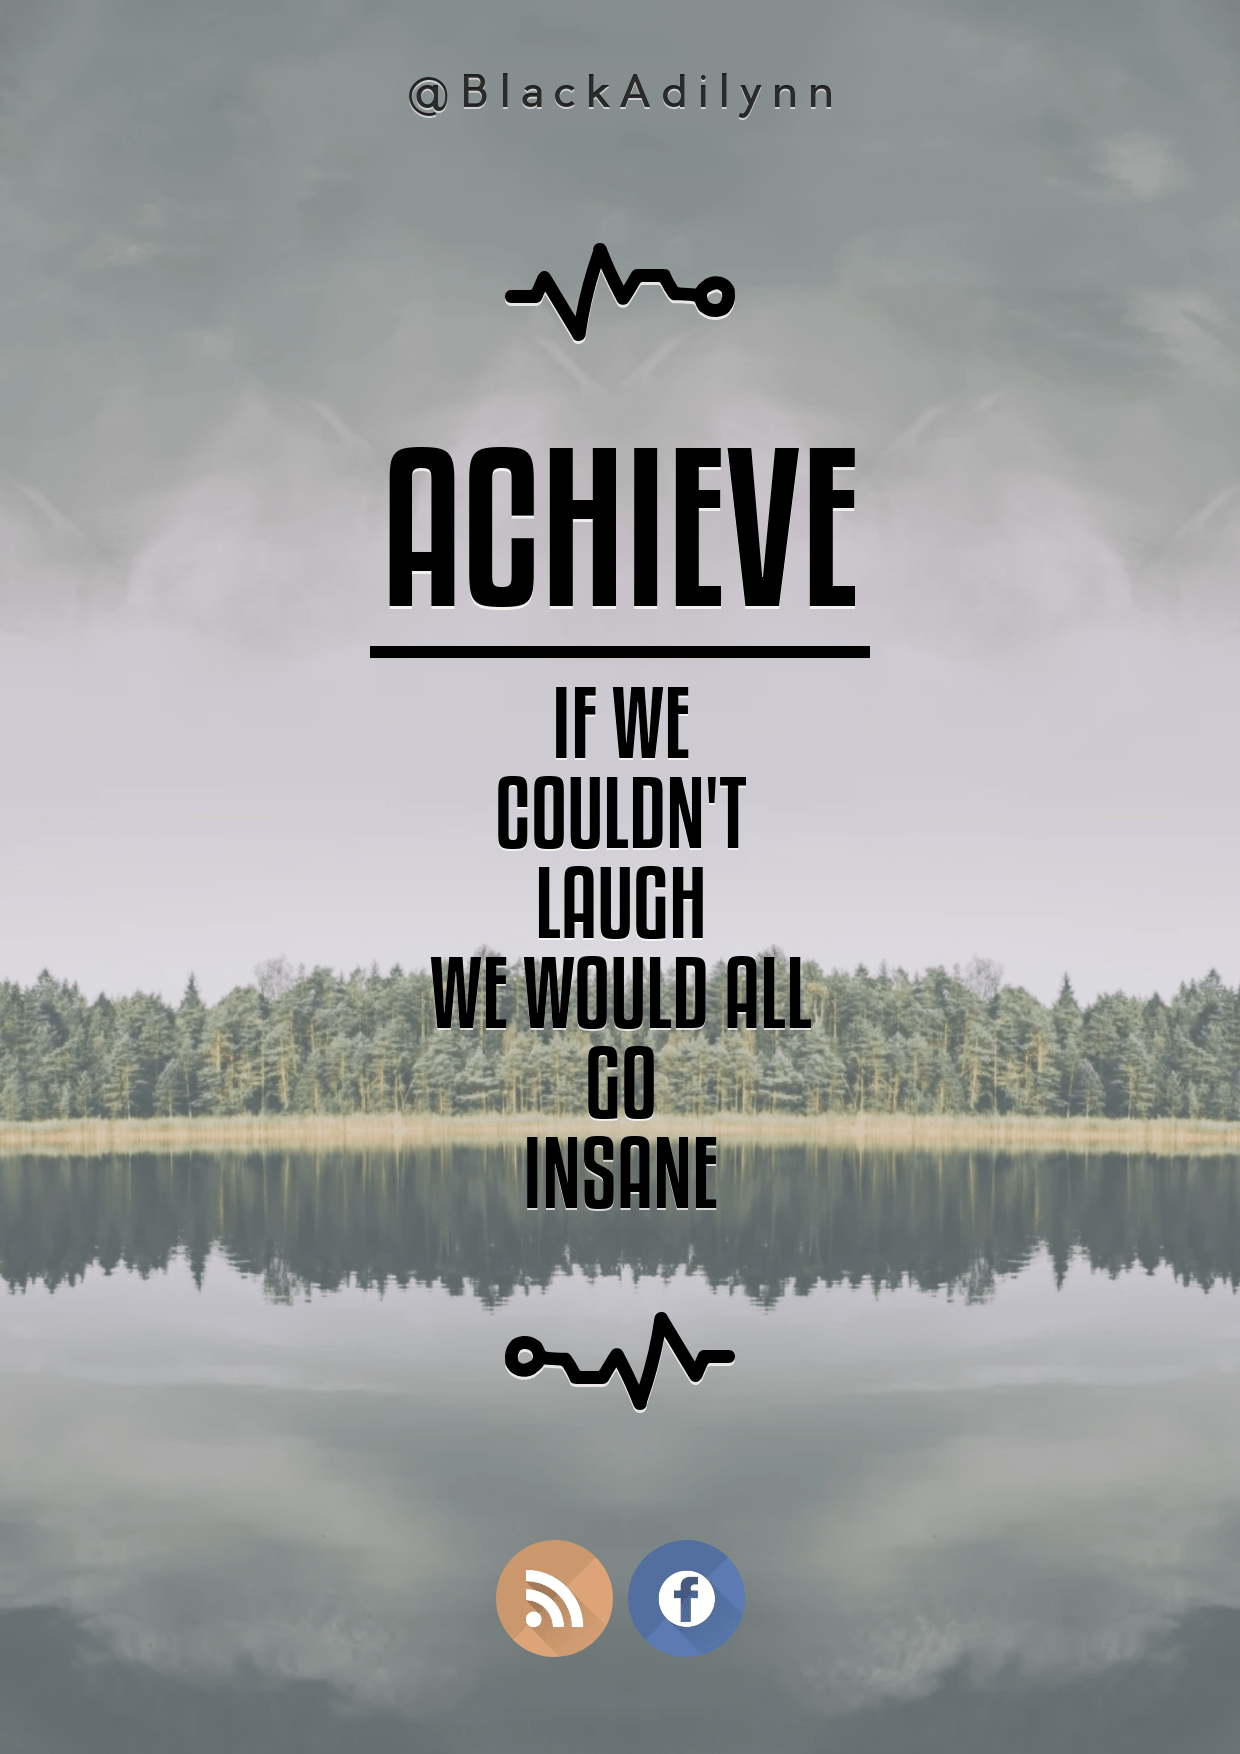 Water,                Text,                Sky,                Reflection,                Font,                Resources,                Poster,                Cloud,                Calm,                Computer,                Wallpaper,                Coniferous,                Product,                 Free Image